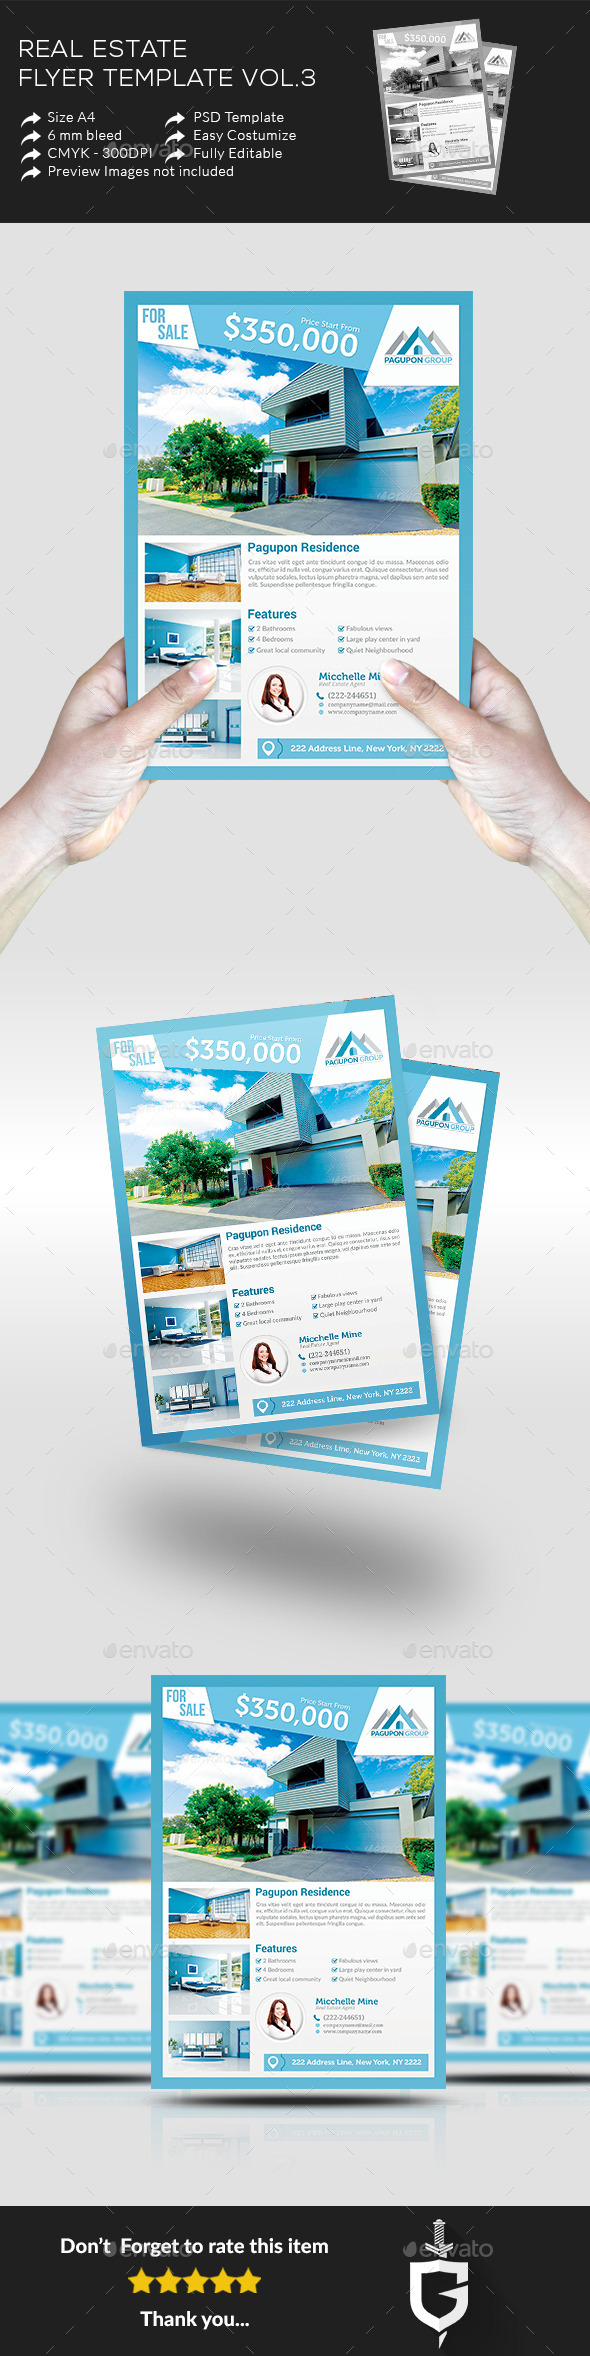 Real Estate Flyer Template Vol.3